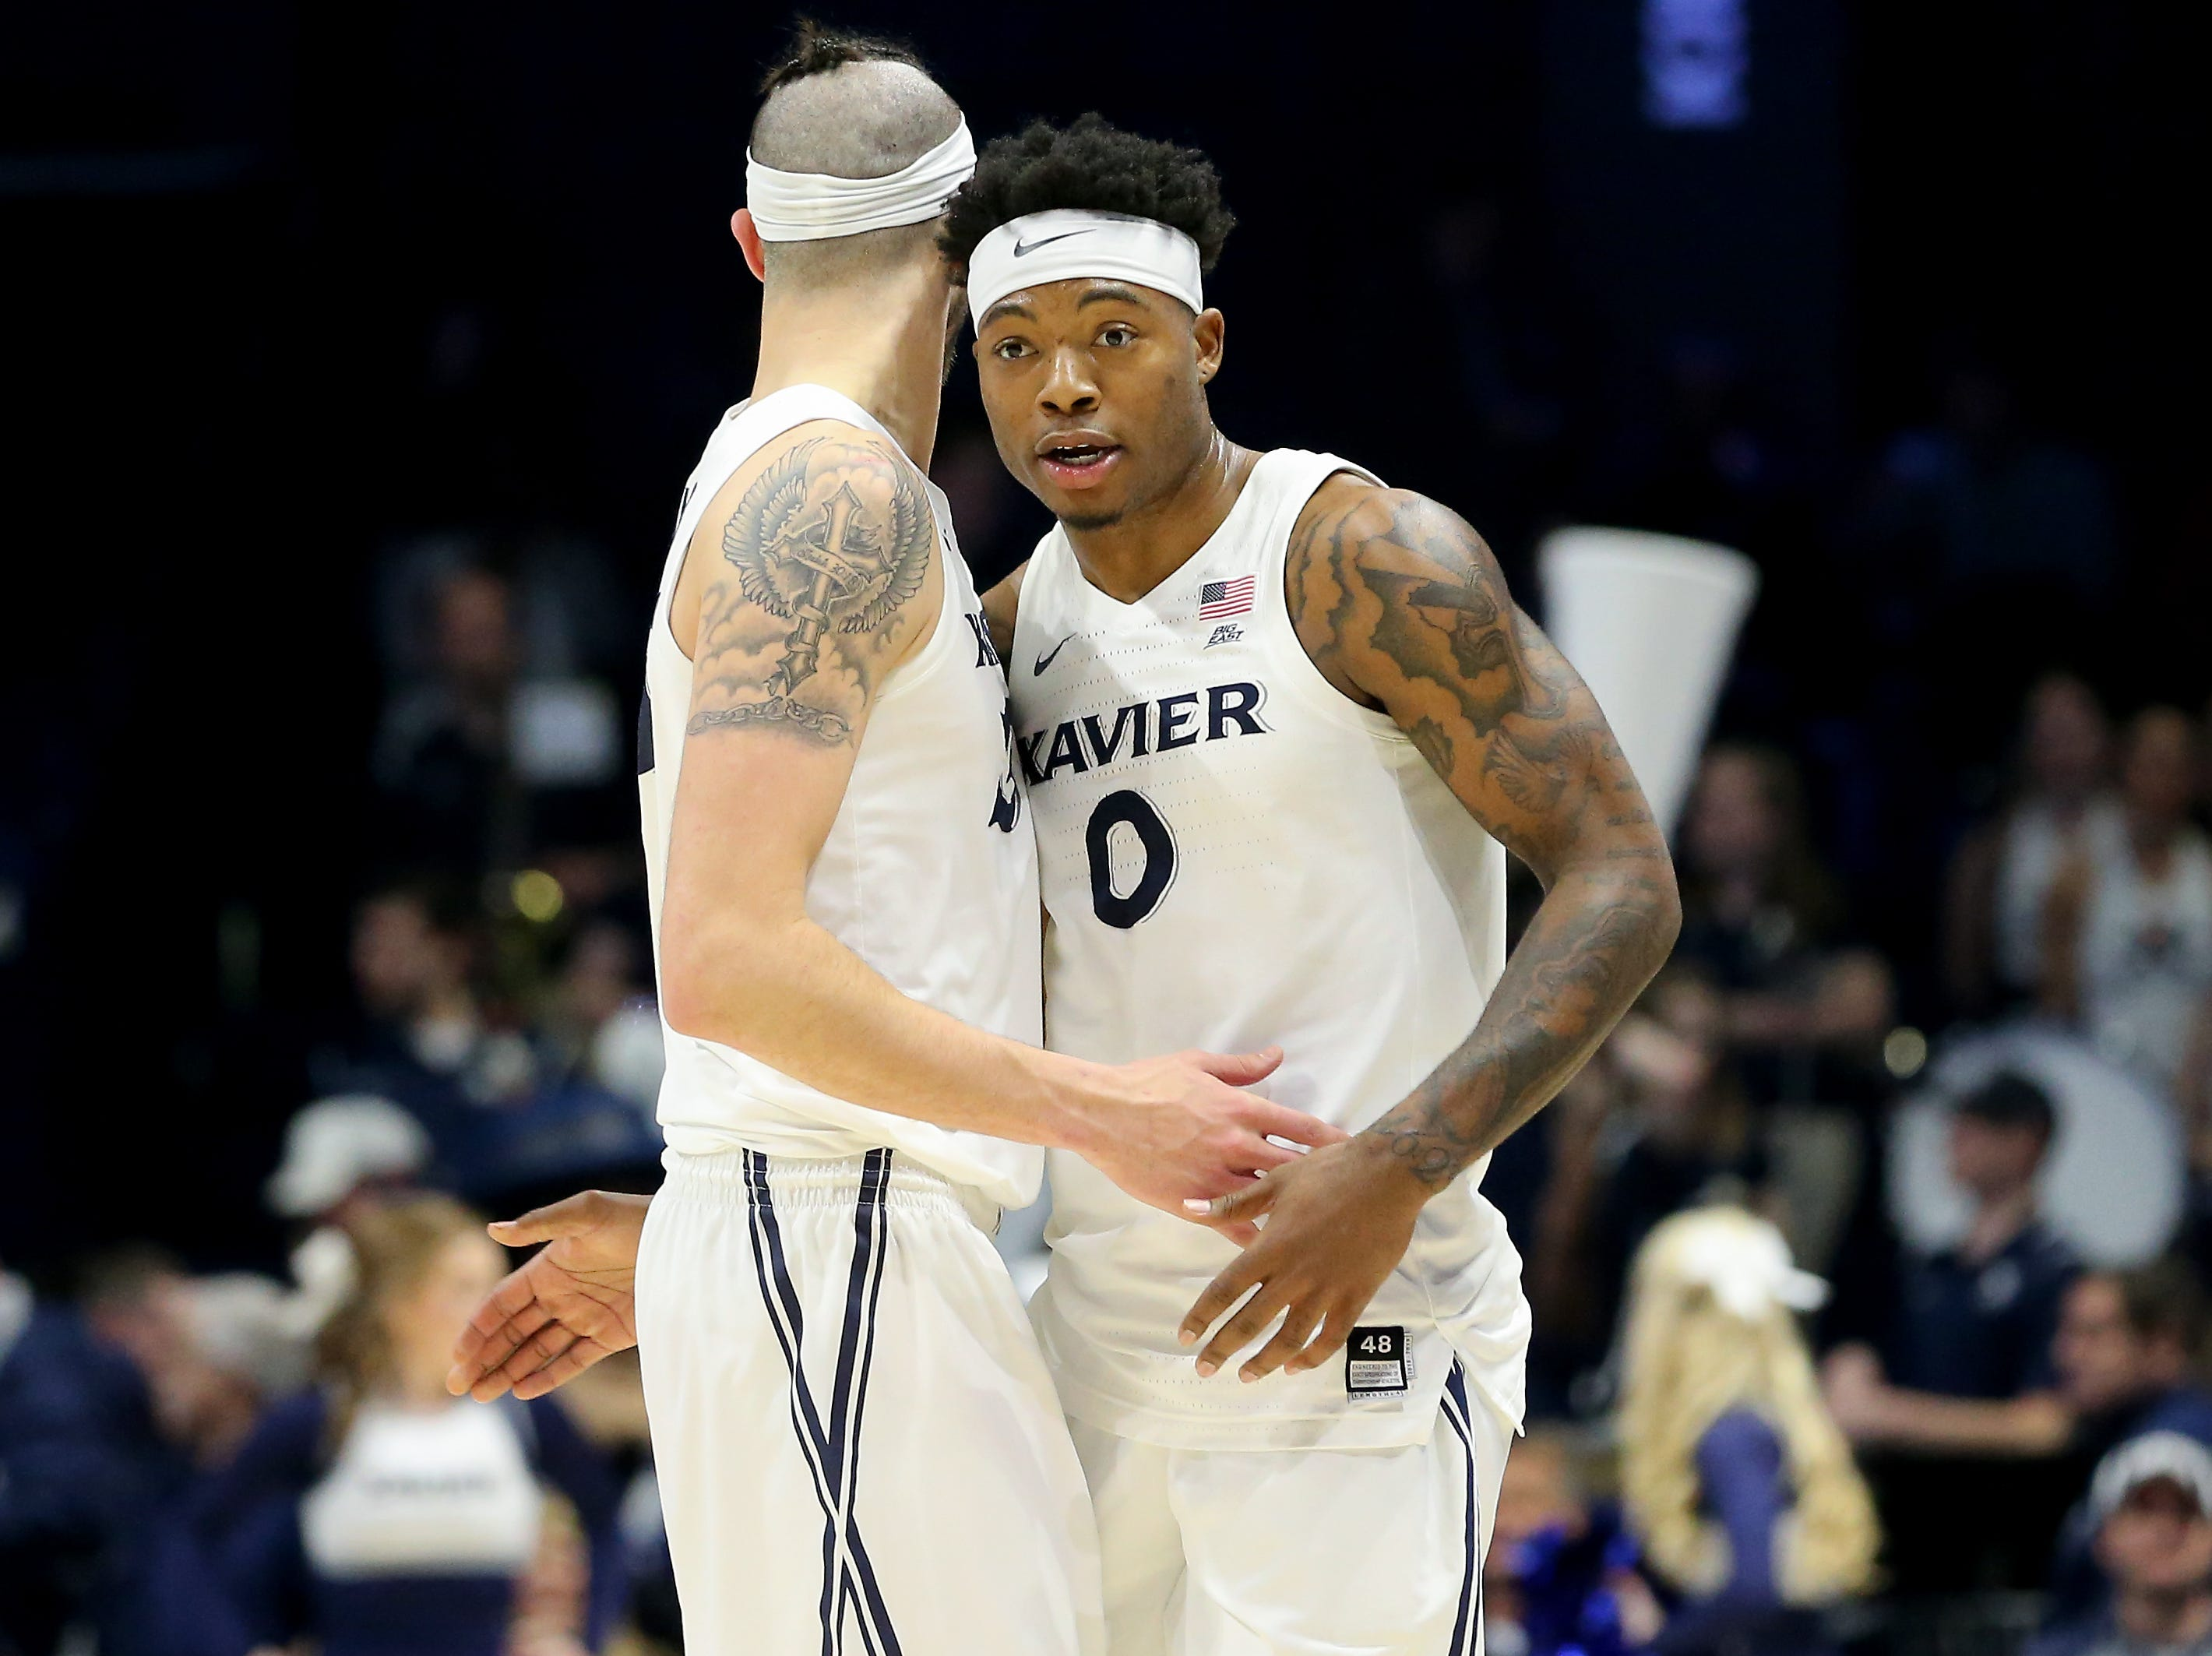 Xavier Musketeers forward Zach Hankins (35) and Xavier Musketeers forward Tyrique Jones (0) embrace in the second half of an NCAA basketball game, Wednesday, Jan. 9, 2019, at the Cintas Center in Cincinnati. Xavier Musketeers won 81-75 against the Georgetown Hoyas.